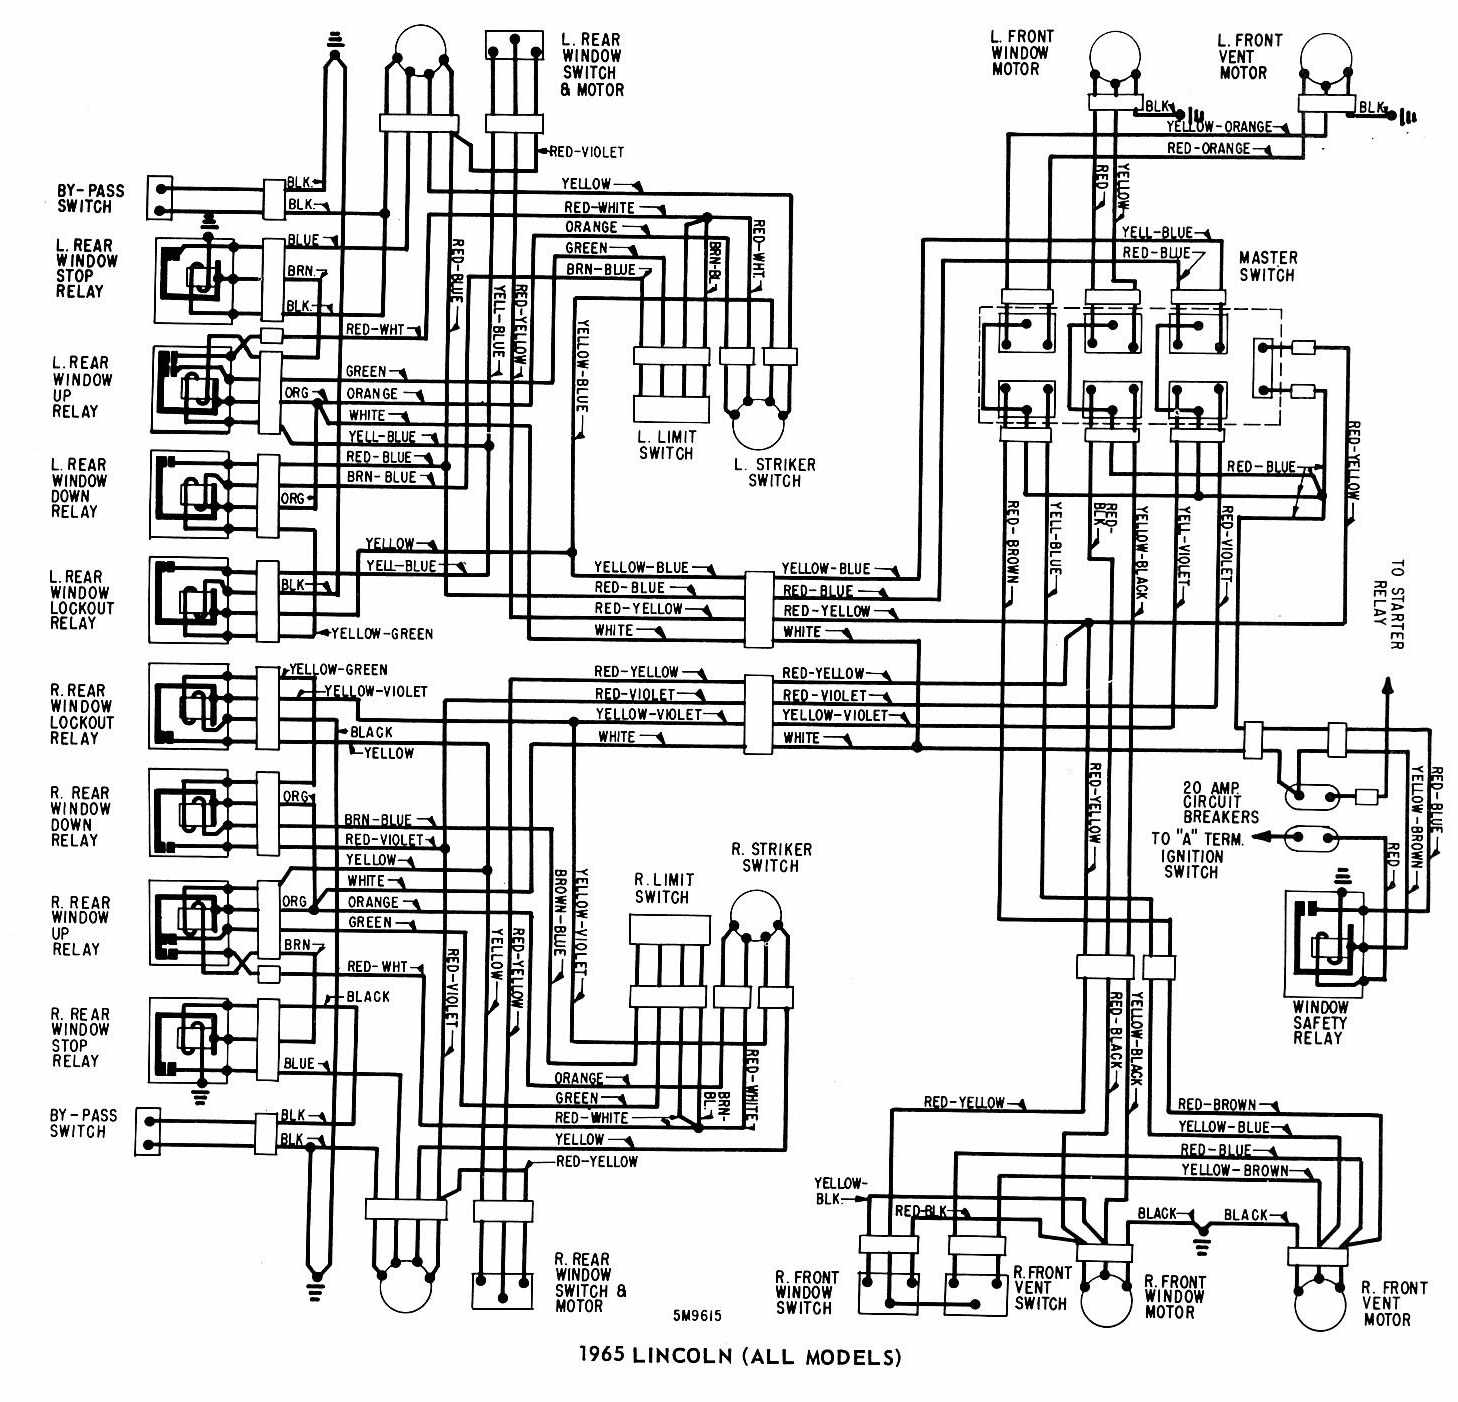 hight resolution of 1962 lincoln wiring diagram free wiring diagram for you u2022 lincoln parts diagrams lincoln wiring diagram